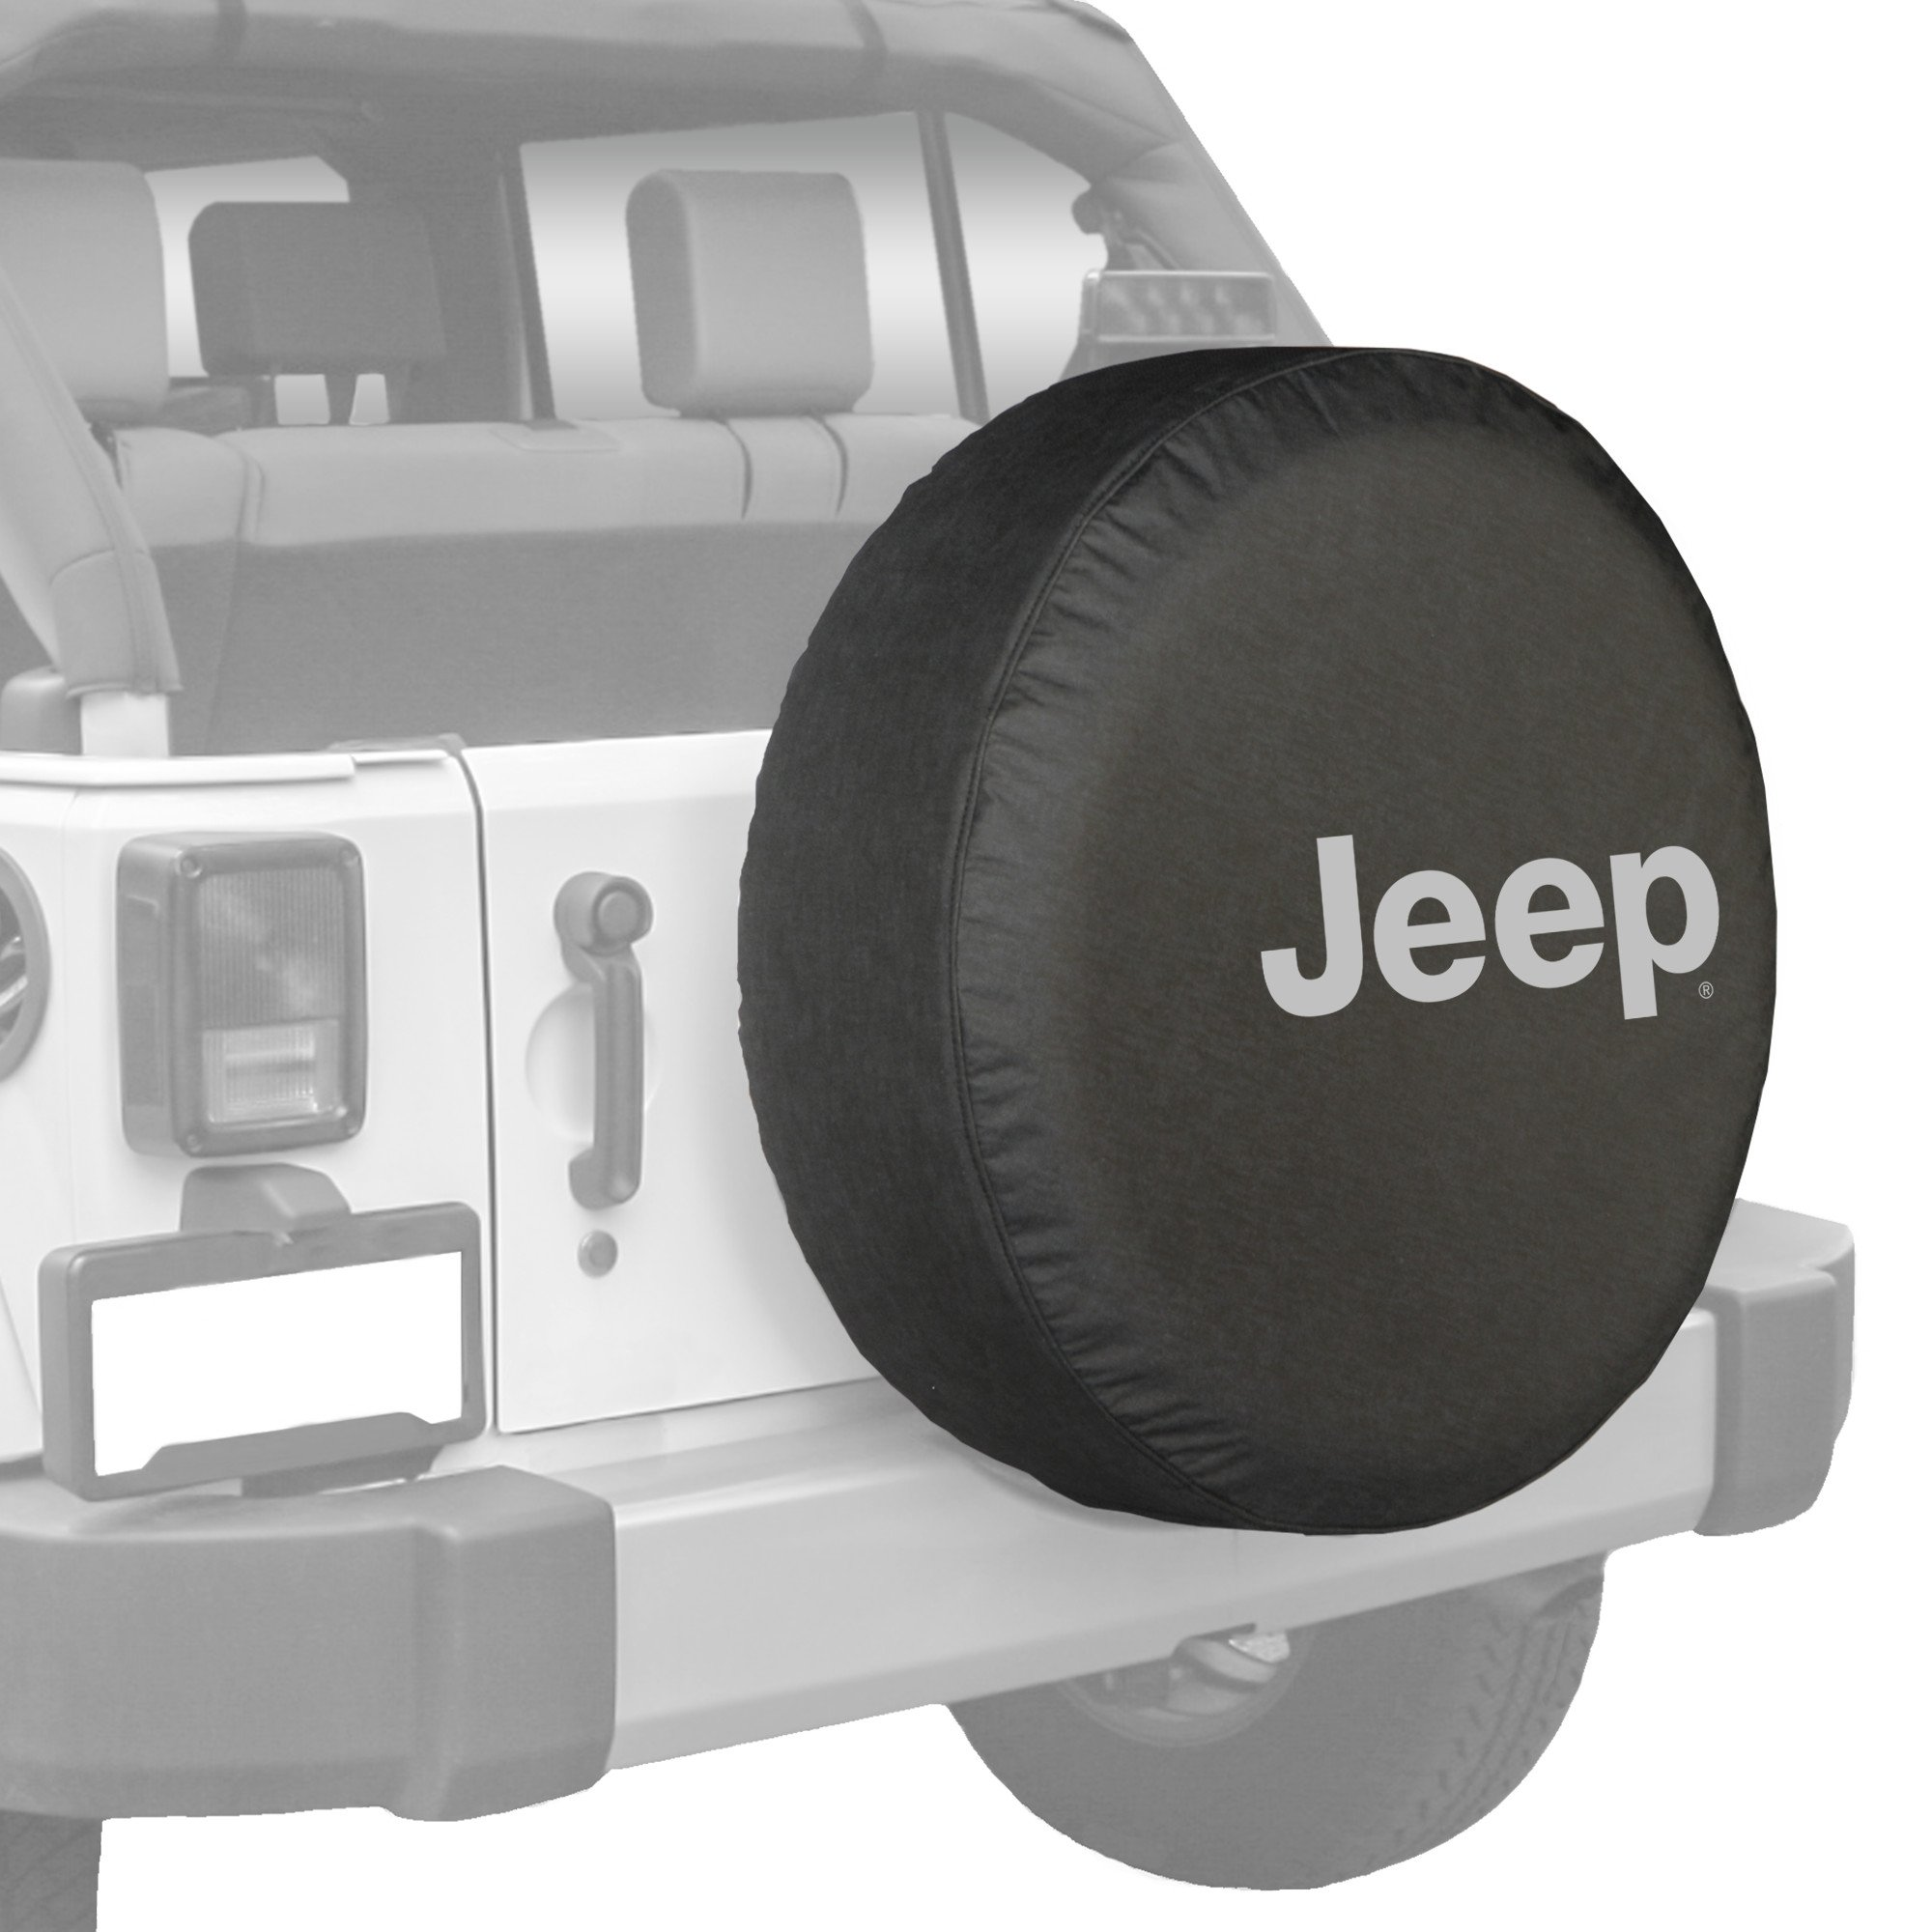 32'' Jeep Logo Tire Cover - (Black Denim Vinyl) - Silver Print - Made in the USA by Optimum USA (Image #3)